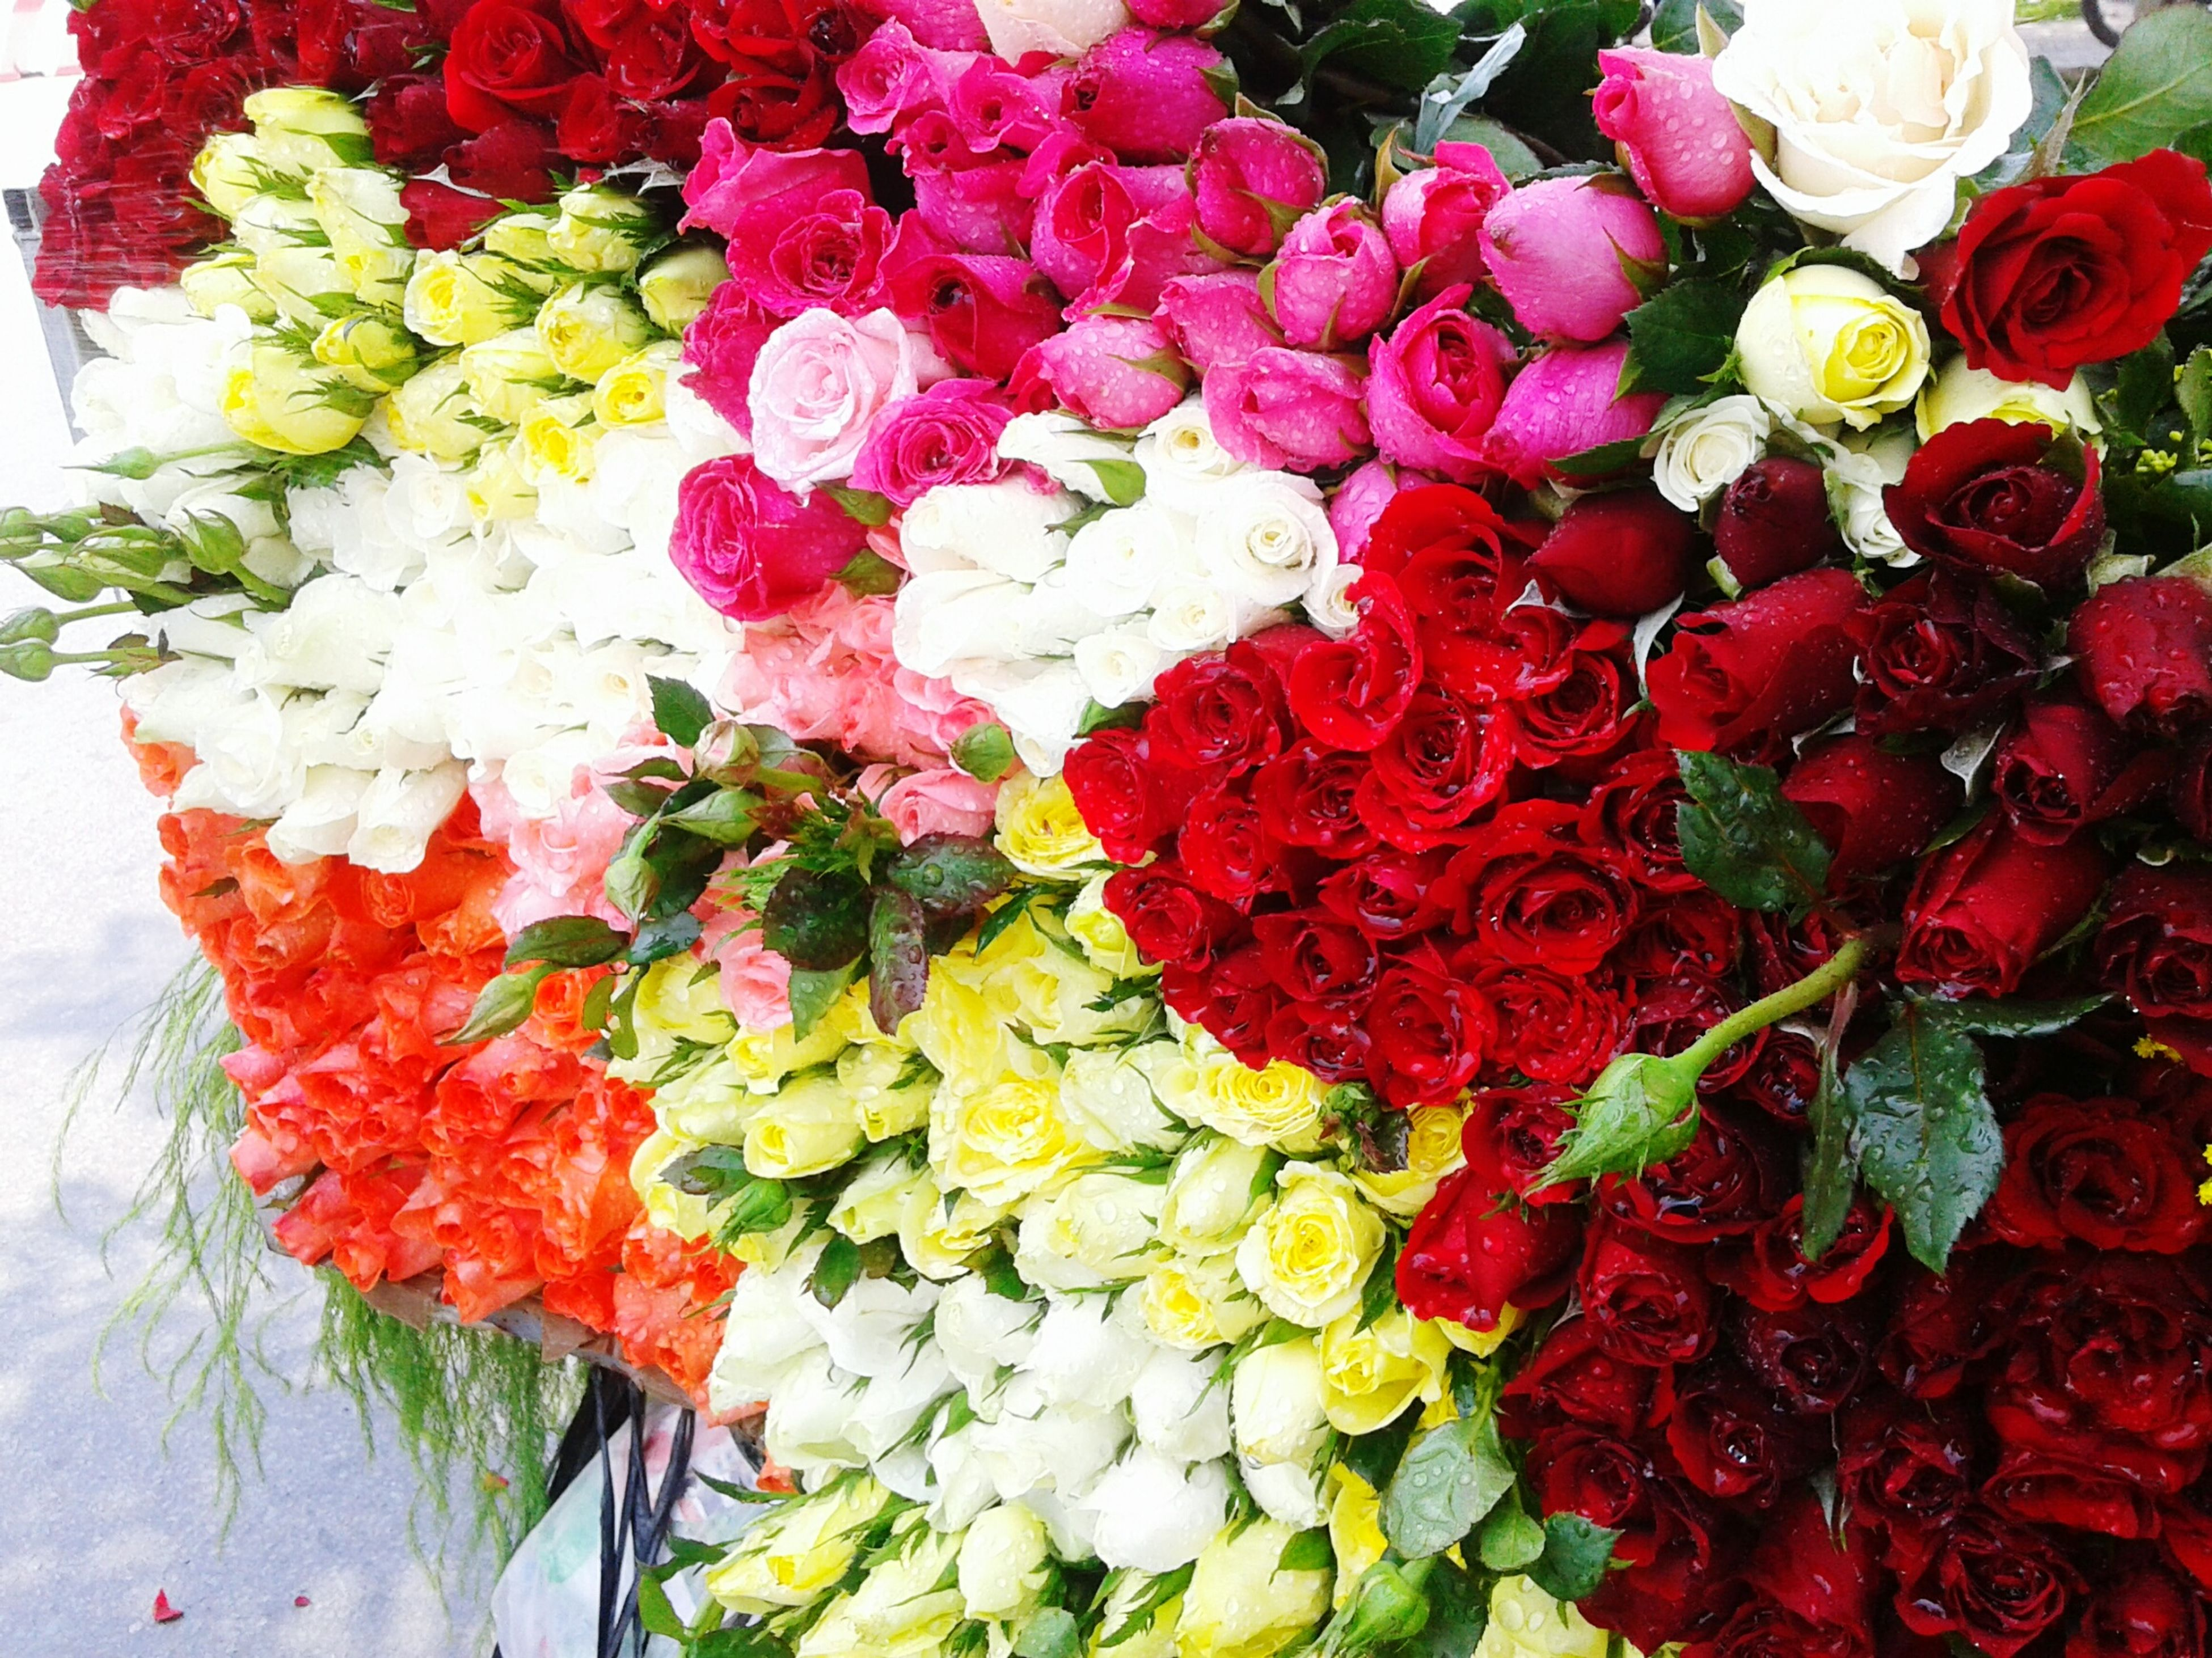 flower, freshness, red, high angle view, fragility, plant, petal, variation, growth, indoors, pink color, multi colored, beauty in nature, abundance, leaf, nature, bouquet, no people, wall - building feature, close-up